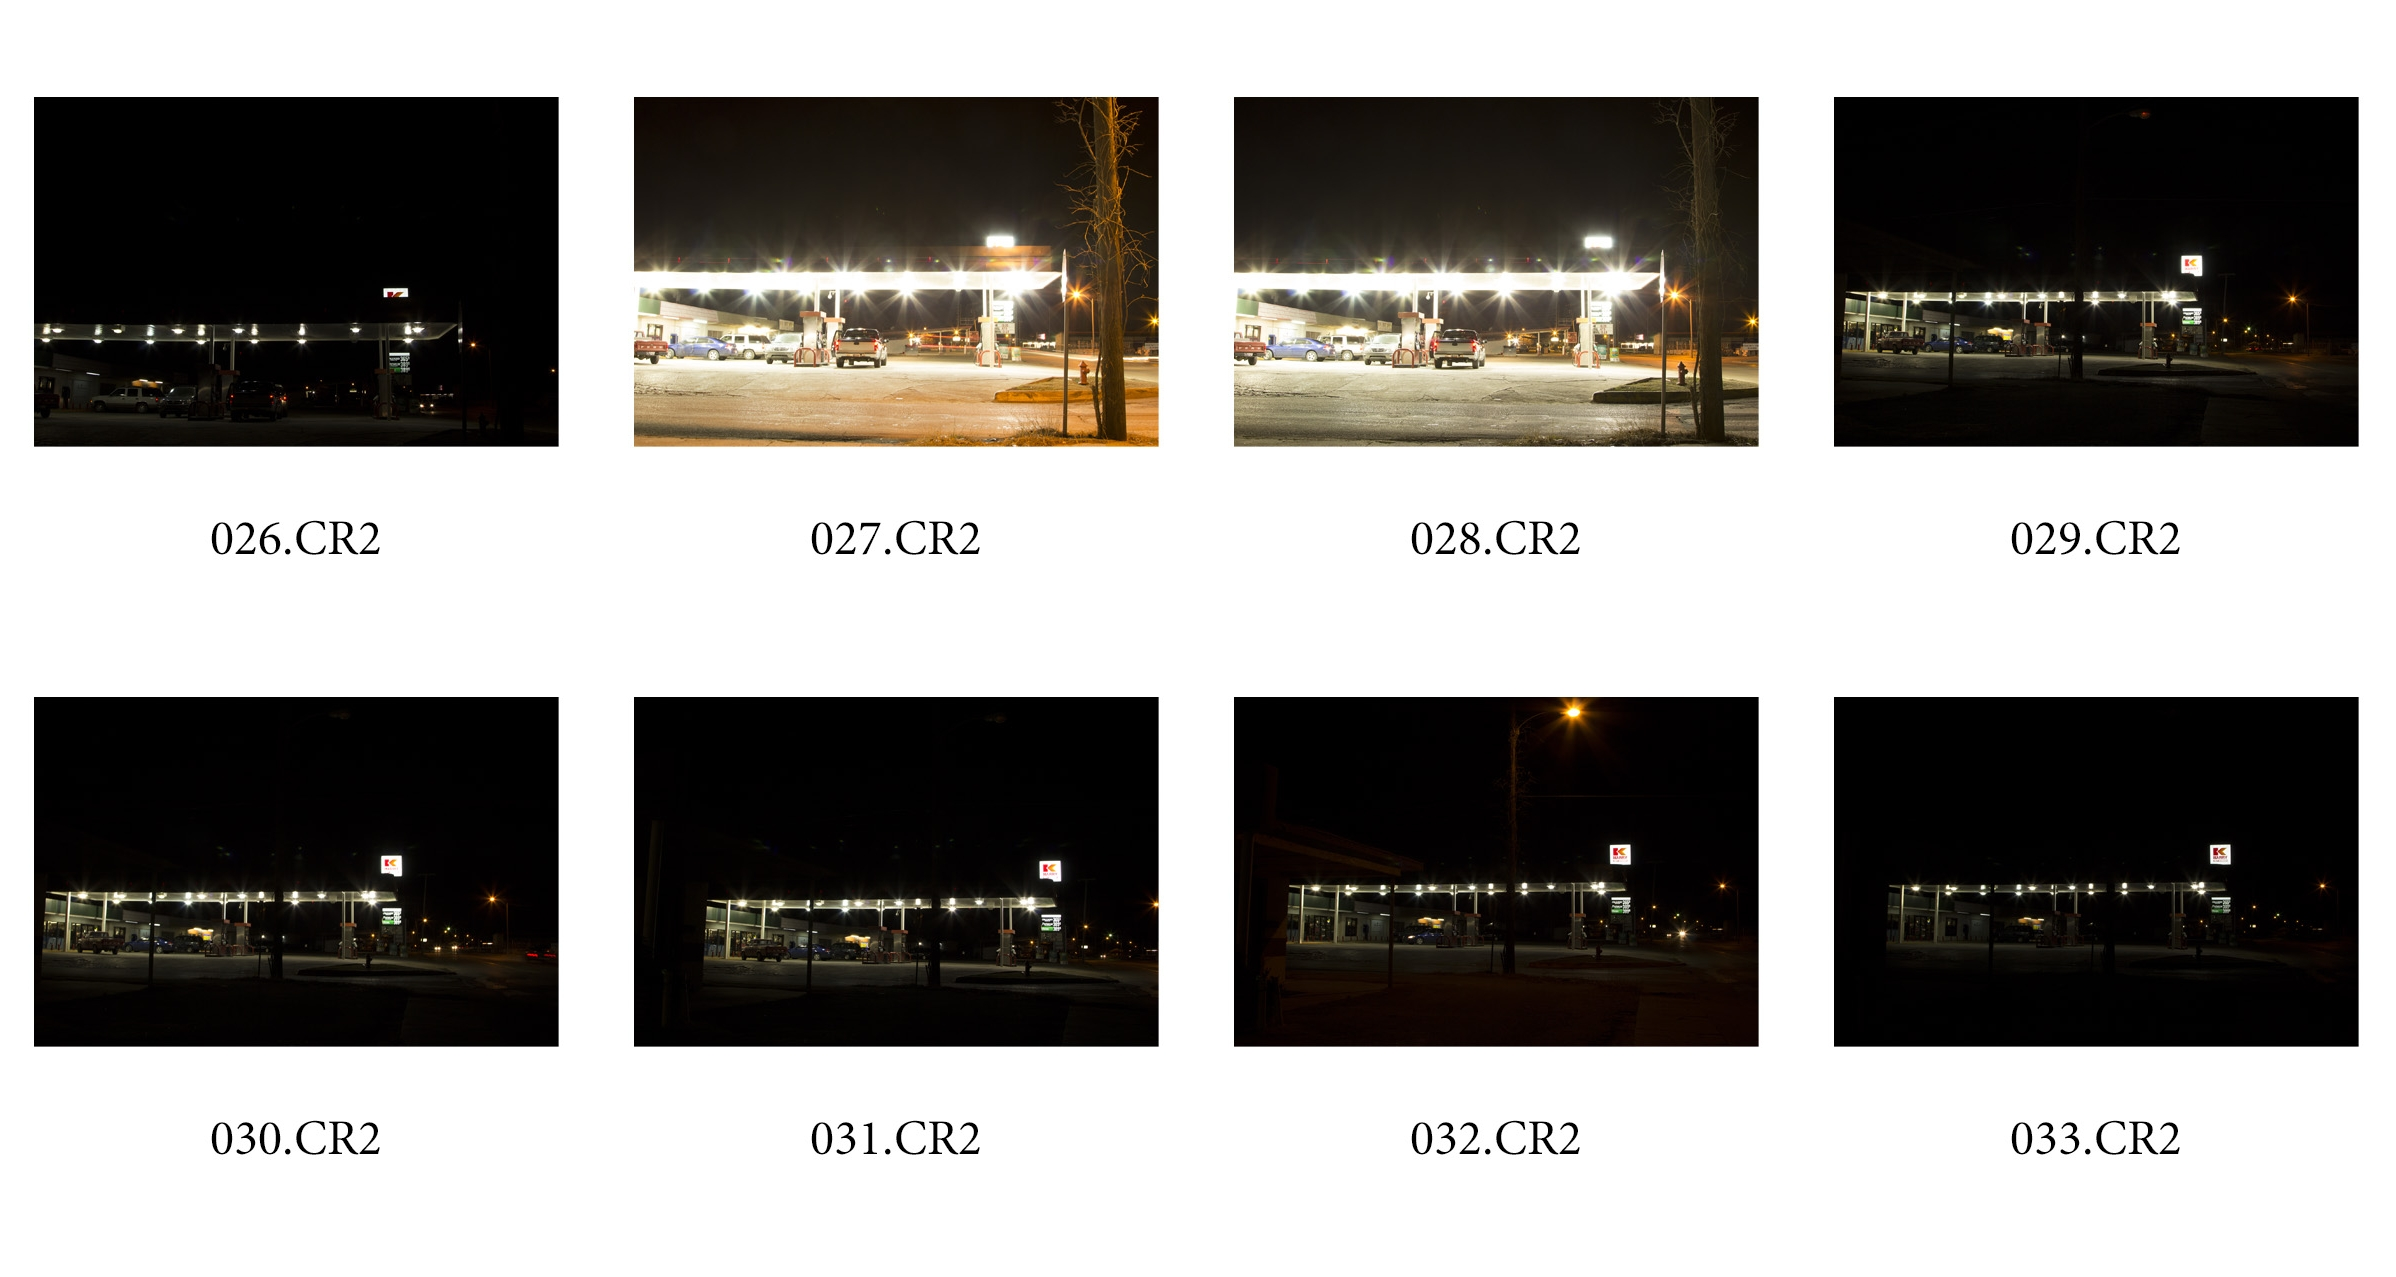 Contact Sheet From 02/22/2013